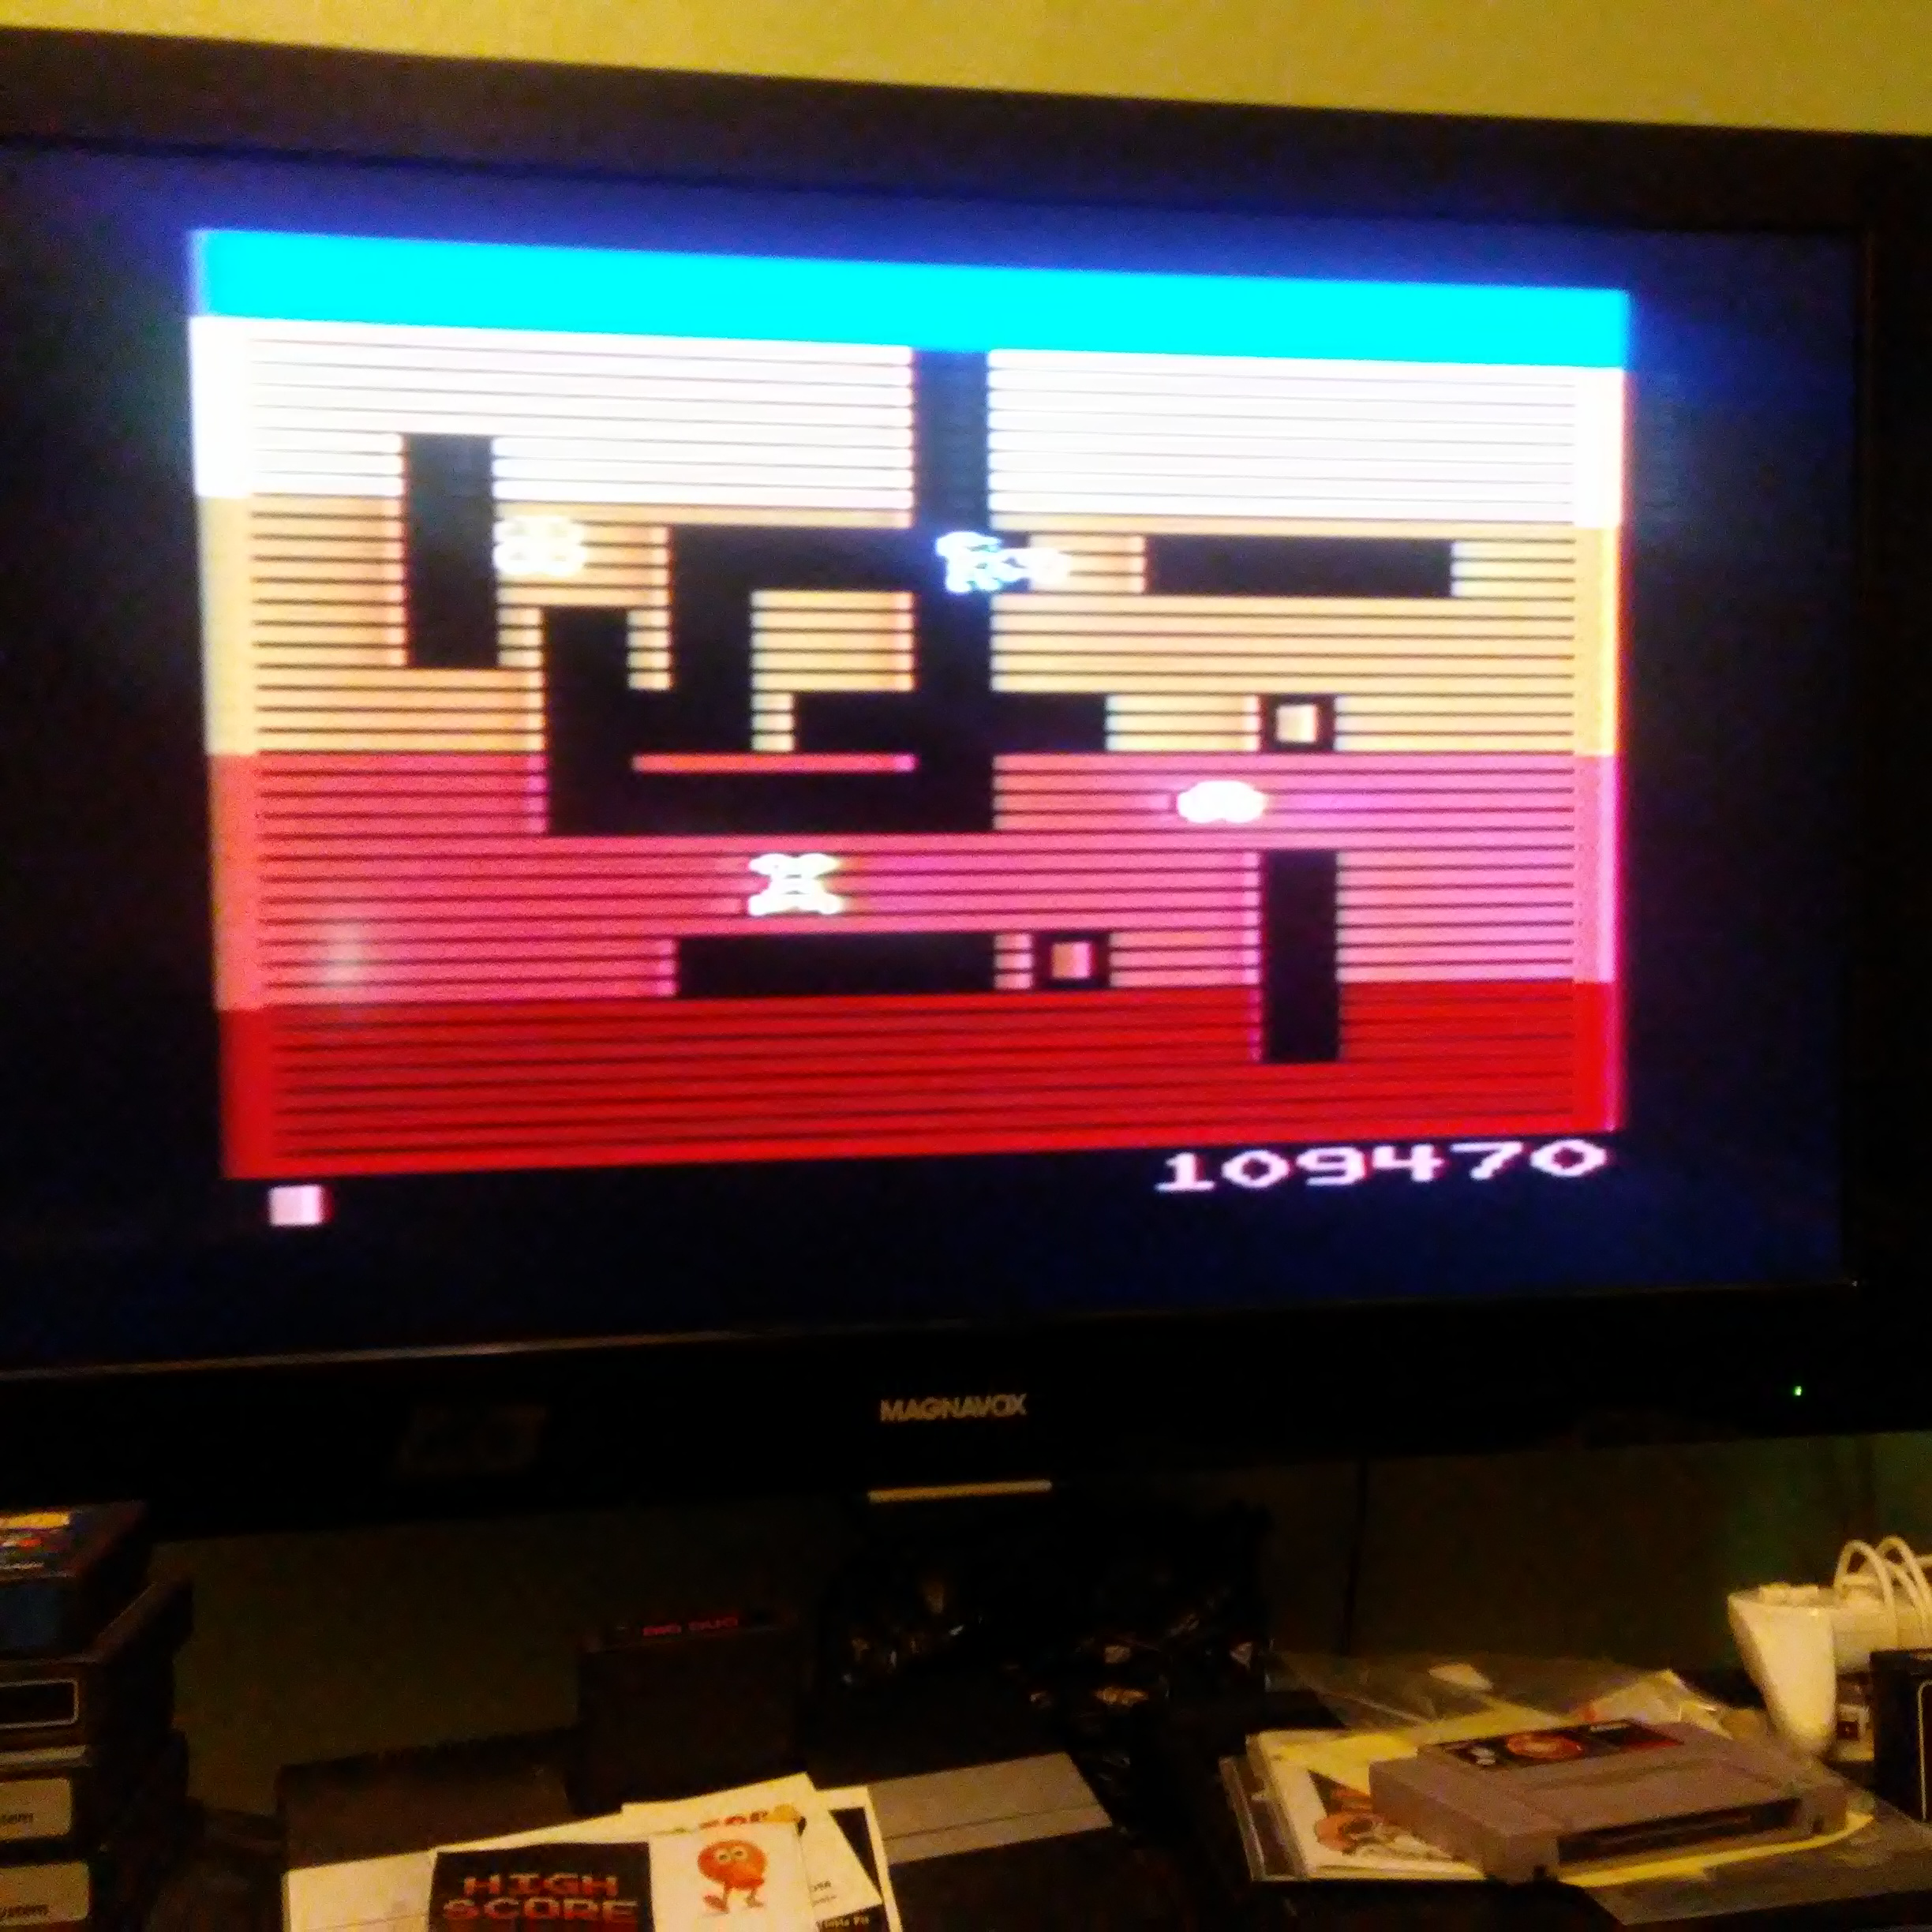 Pjsteele: Dig Dug (Atari 2600) 109,470 points on 2018-07-22 11:30:10